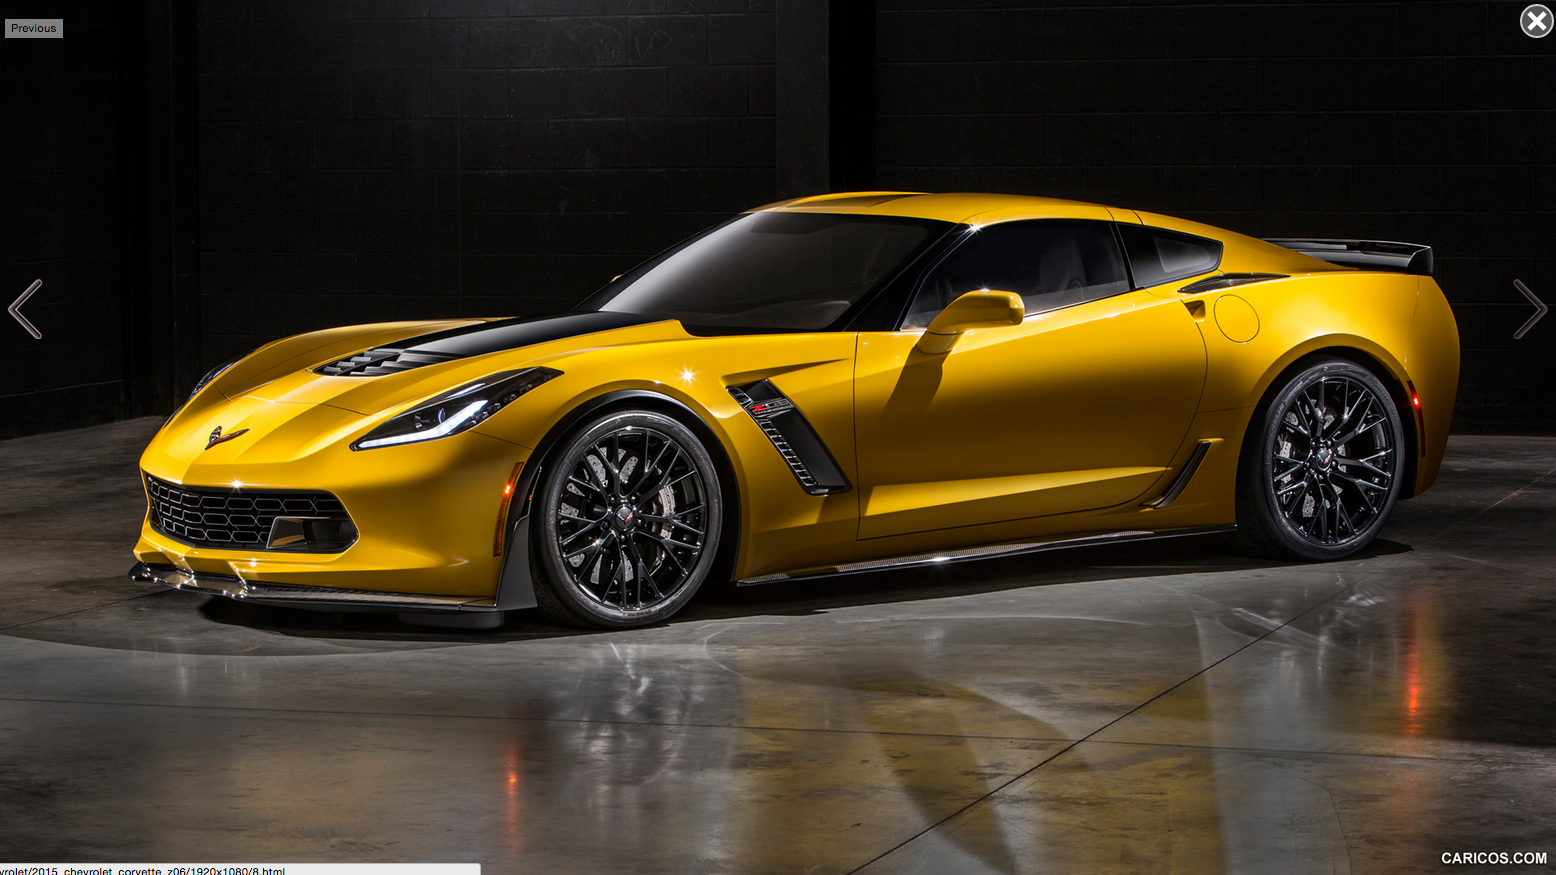 2015 chevrolet corvette pictures see 706 pics for 2015 chevrolet corvette browse interior and exterior photos for 2015 chevrolet corvette